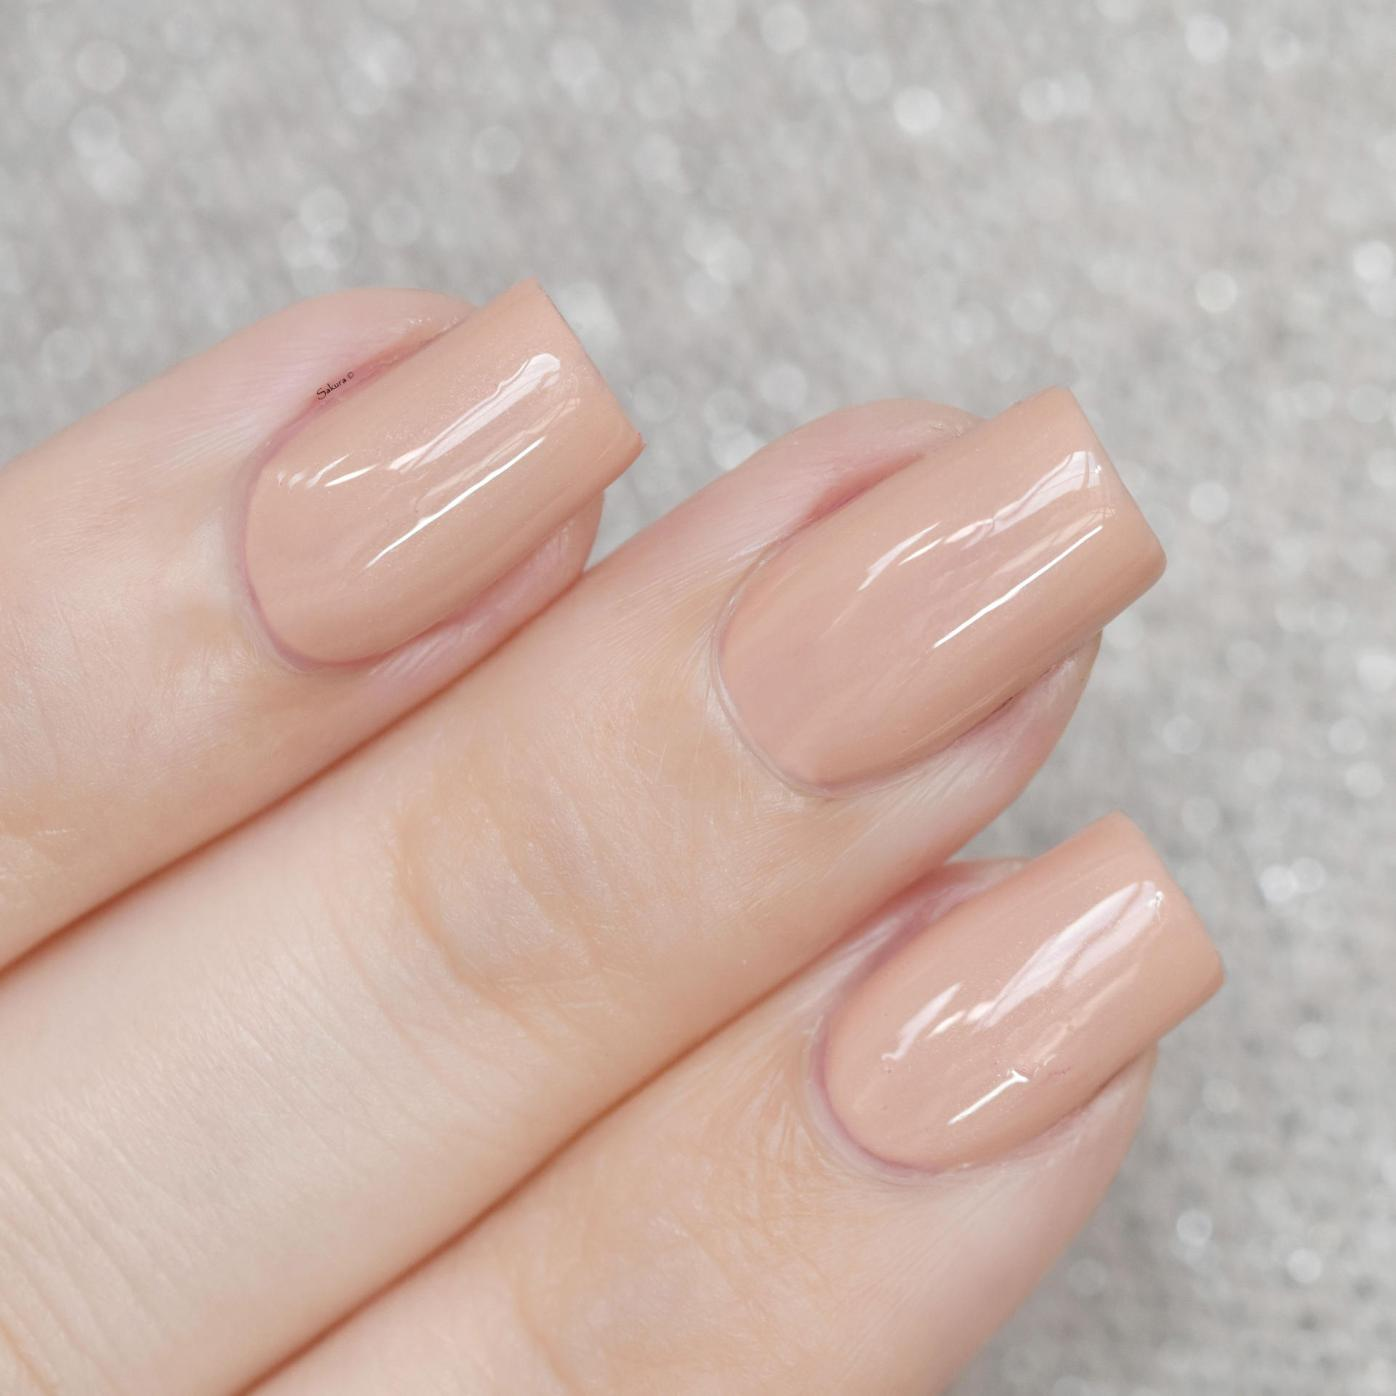 SALLY HANSEN CAFE AU LAIT 3